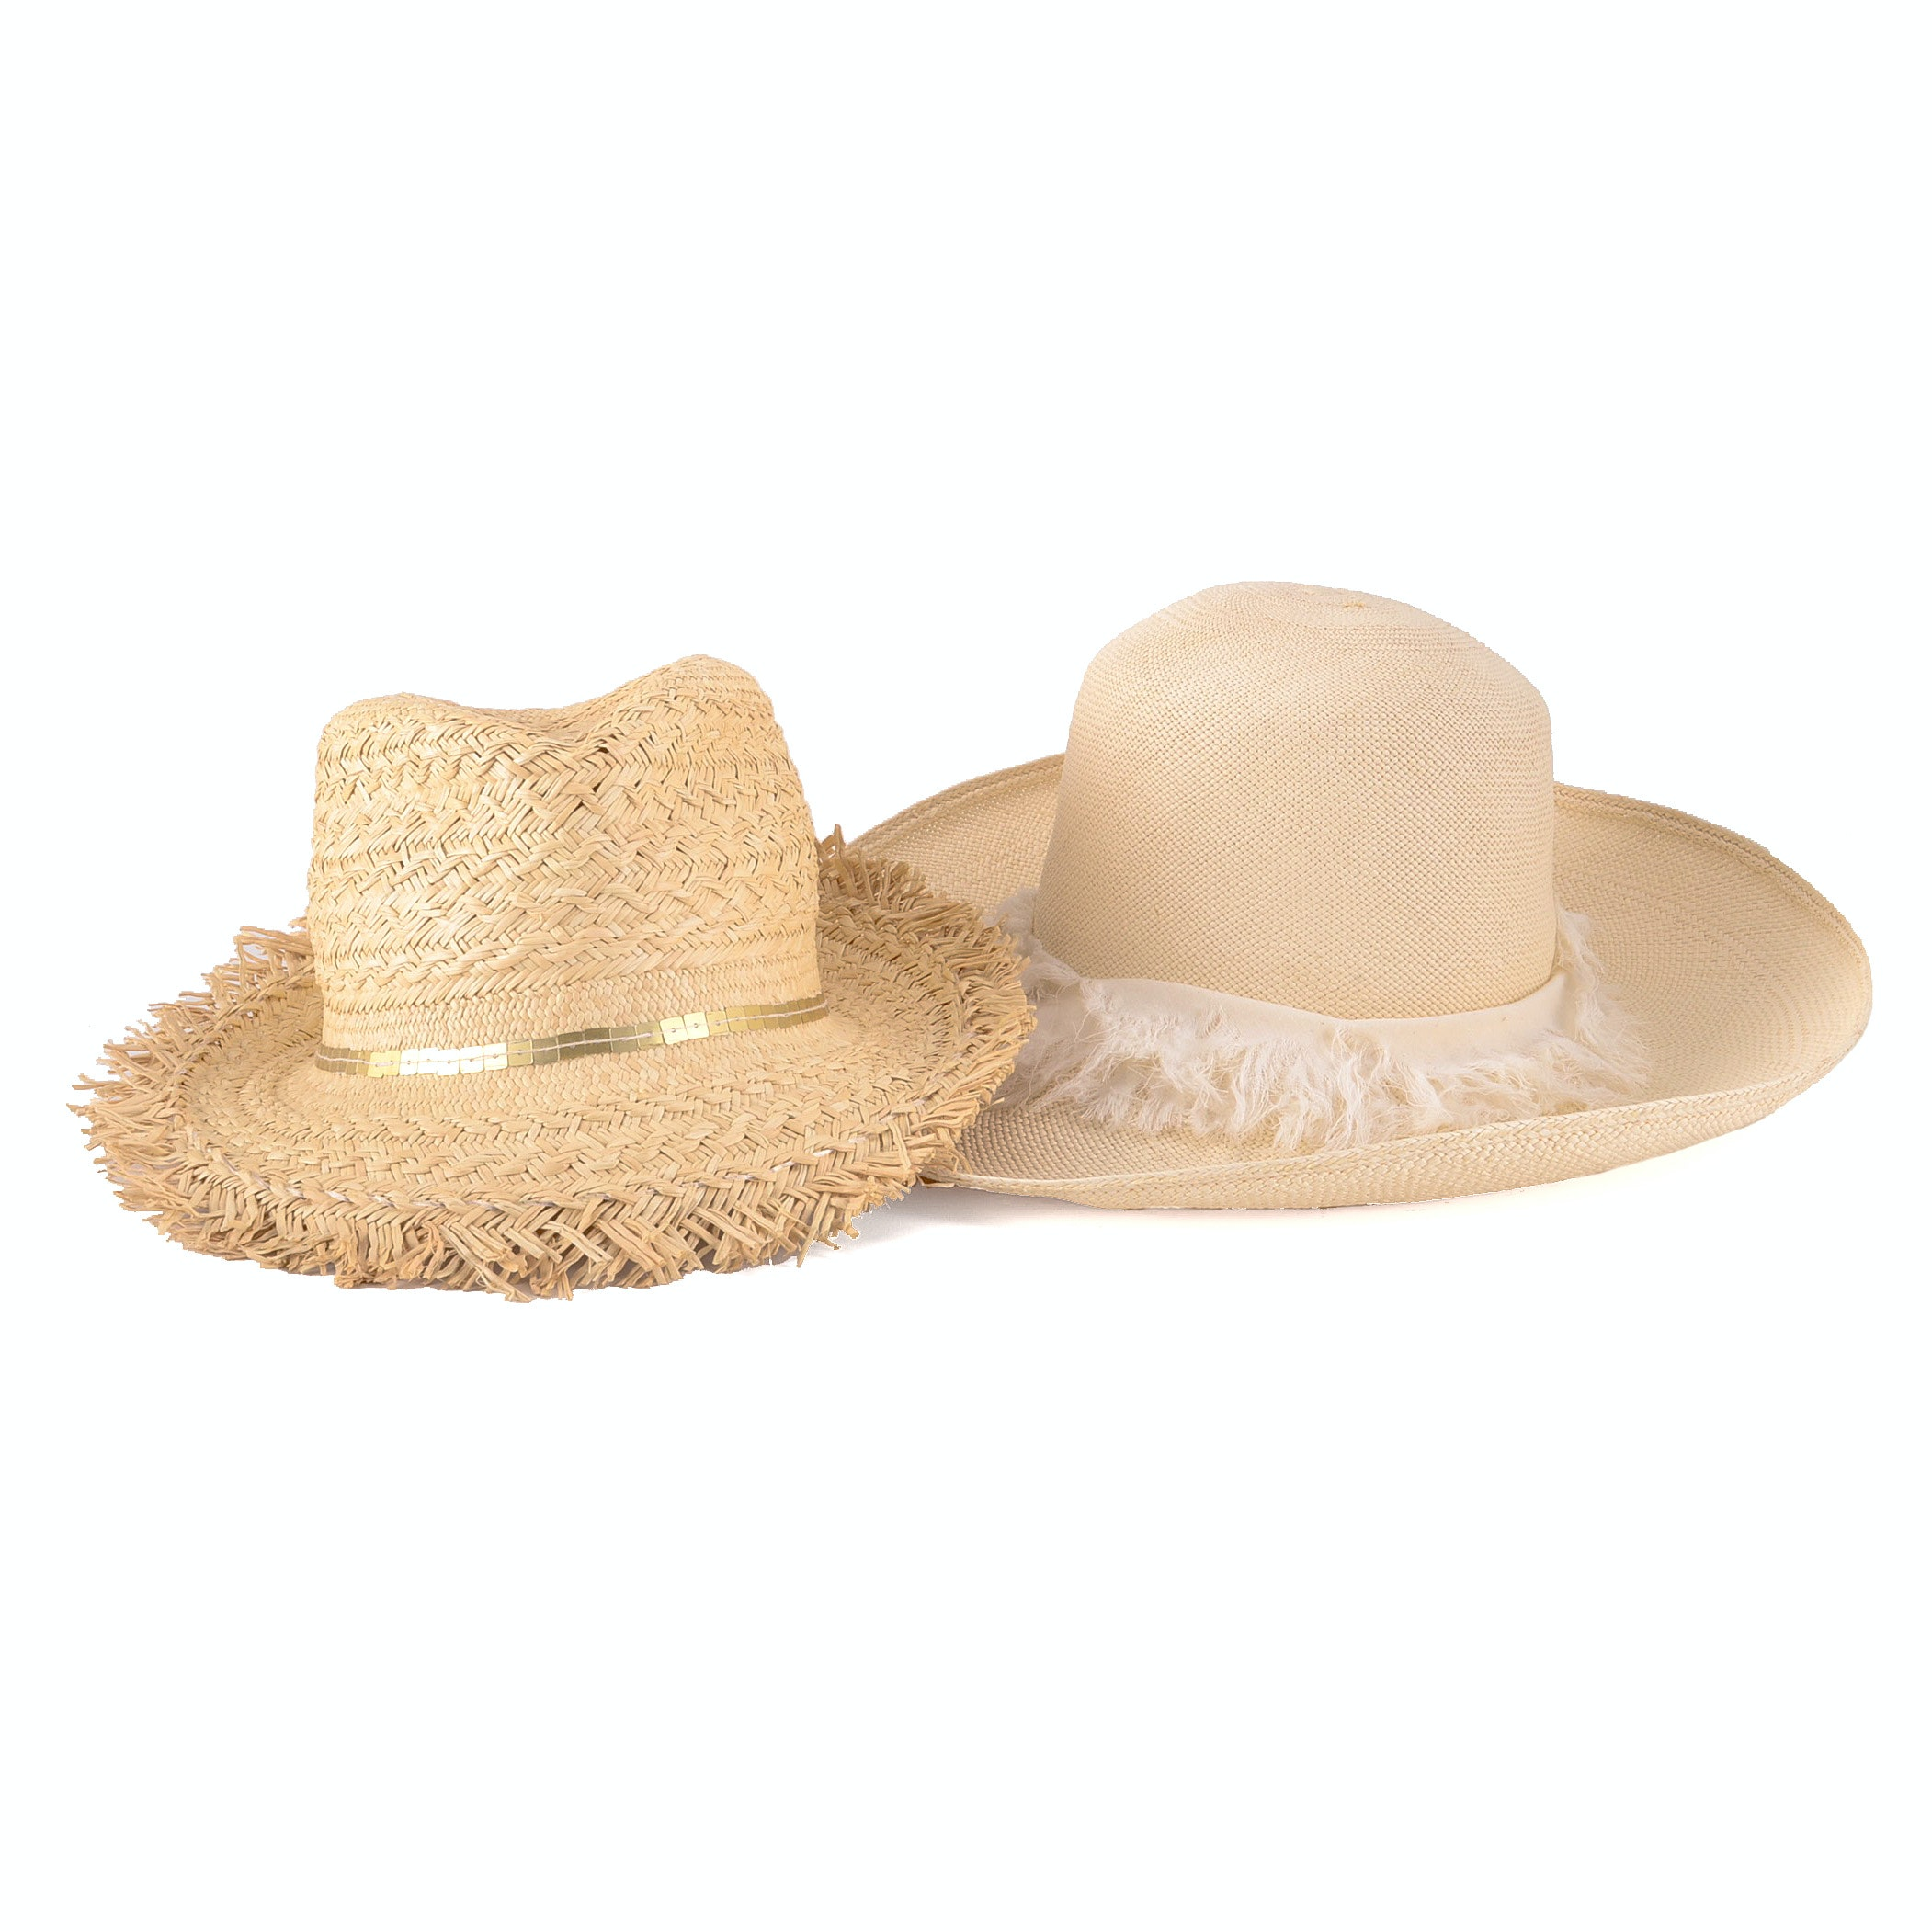 Two Lola Straw Hats